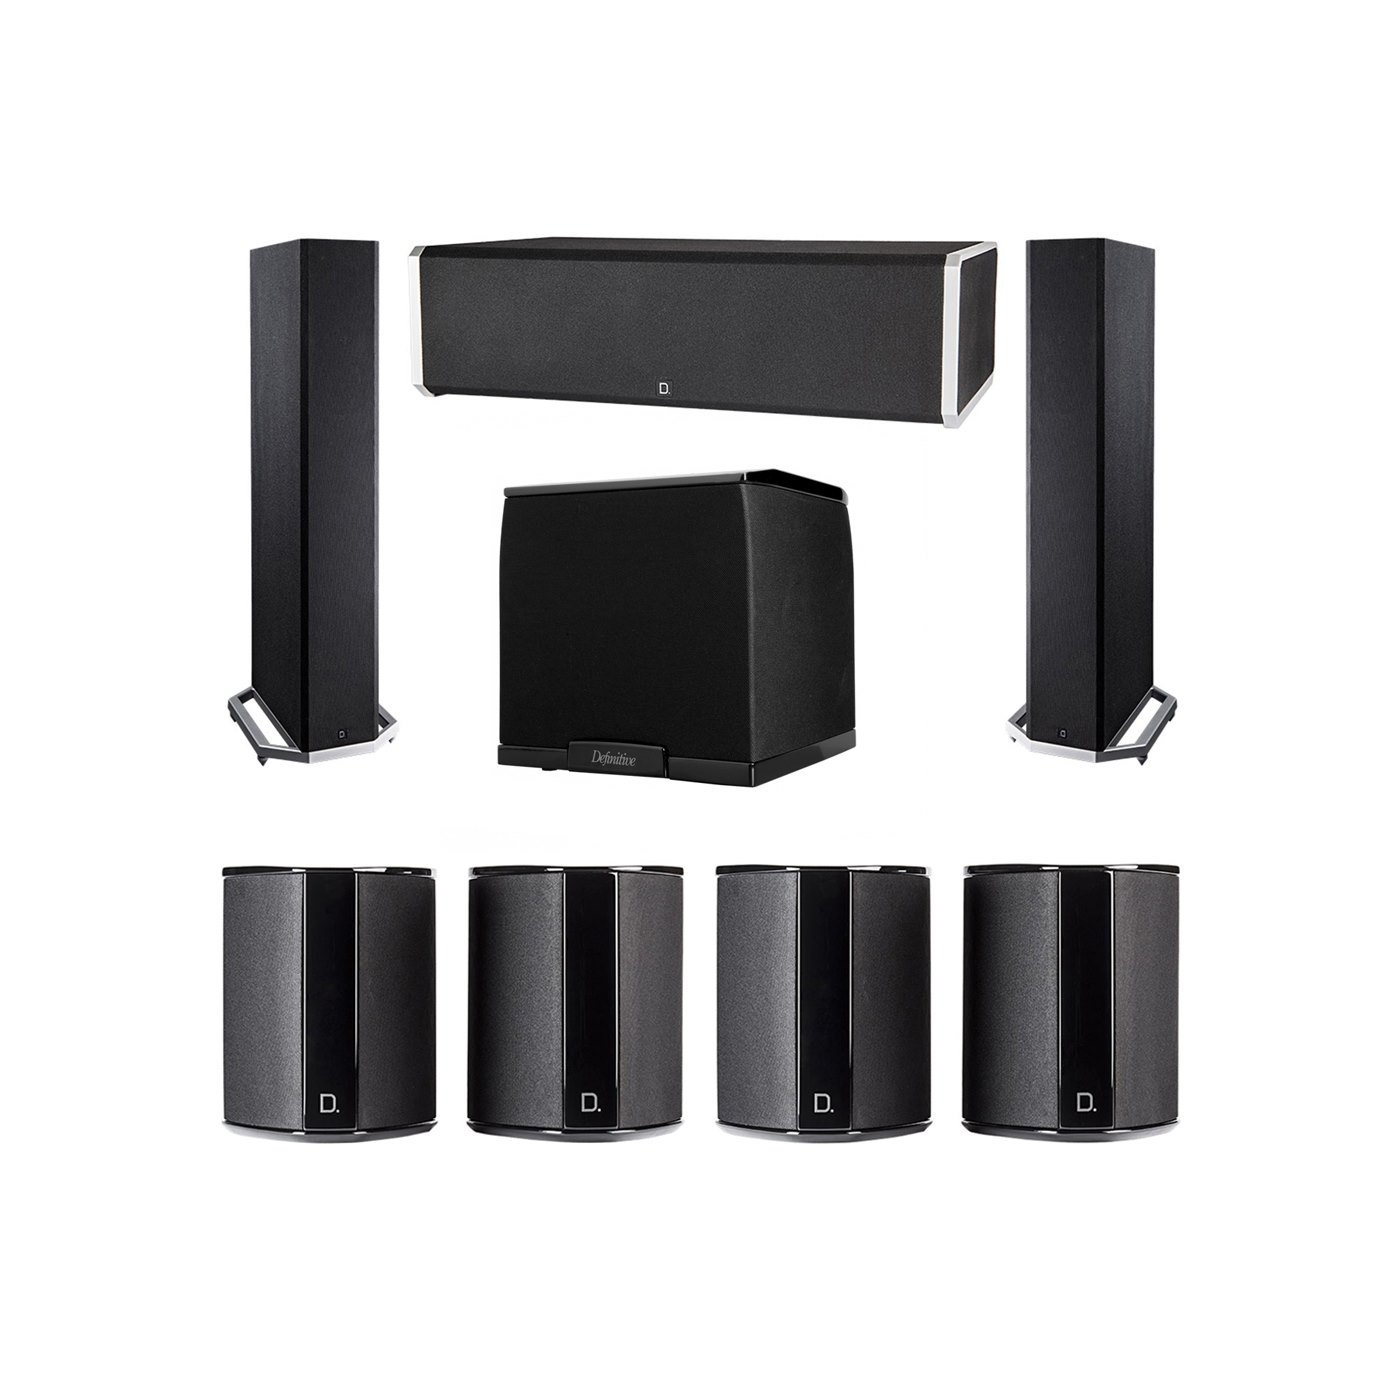 Definitive Technology 7.1 System with 2 BP9020 Tower Speakers, 1 CS9060 Center Channel Speaker, 4 SR9040 Surround Speaker, 1 Definitive Technology SuperCube 2000 Powered Subwoofer